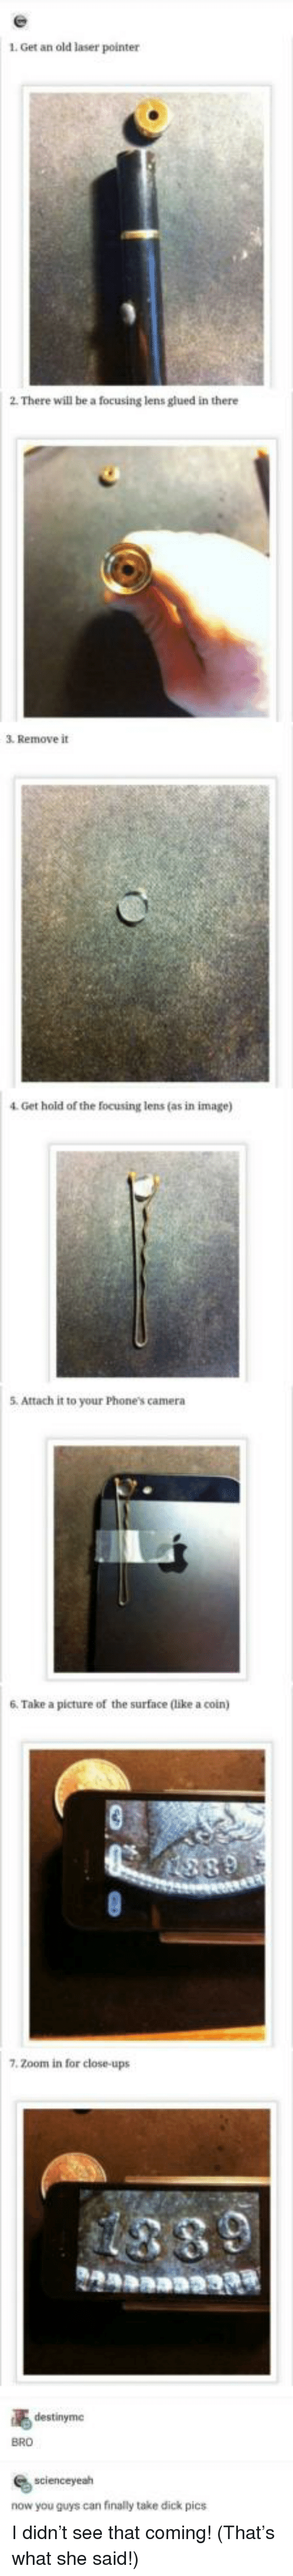 dick pics: 1. Get an old laser pointer  2. There will be a focusing lens glued in there  3. Remove it  4. Get hold of the focusing lens (as in image)  5.  Attach it to your Phone's camera  6. Take a picture of the surface (like a coin)  7. Zoom in for close-ups  destinyme  BRO  scienceyeah  now you guys can finally take dick pics I didn't see that coming! (That's what she said!)